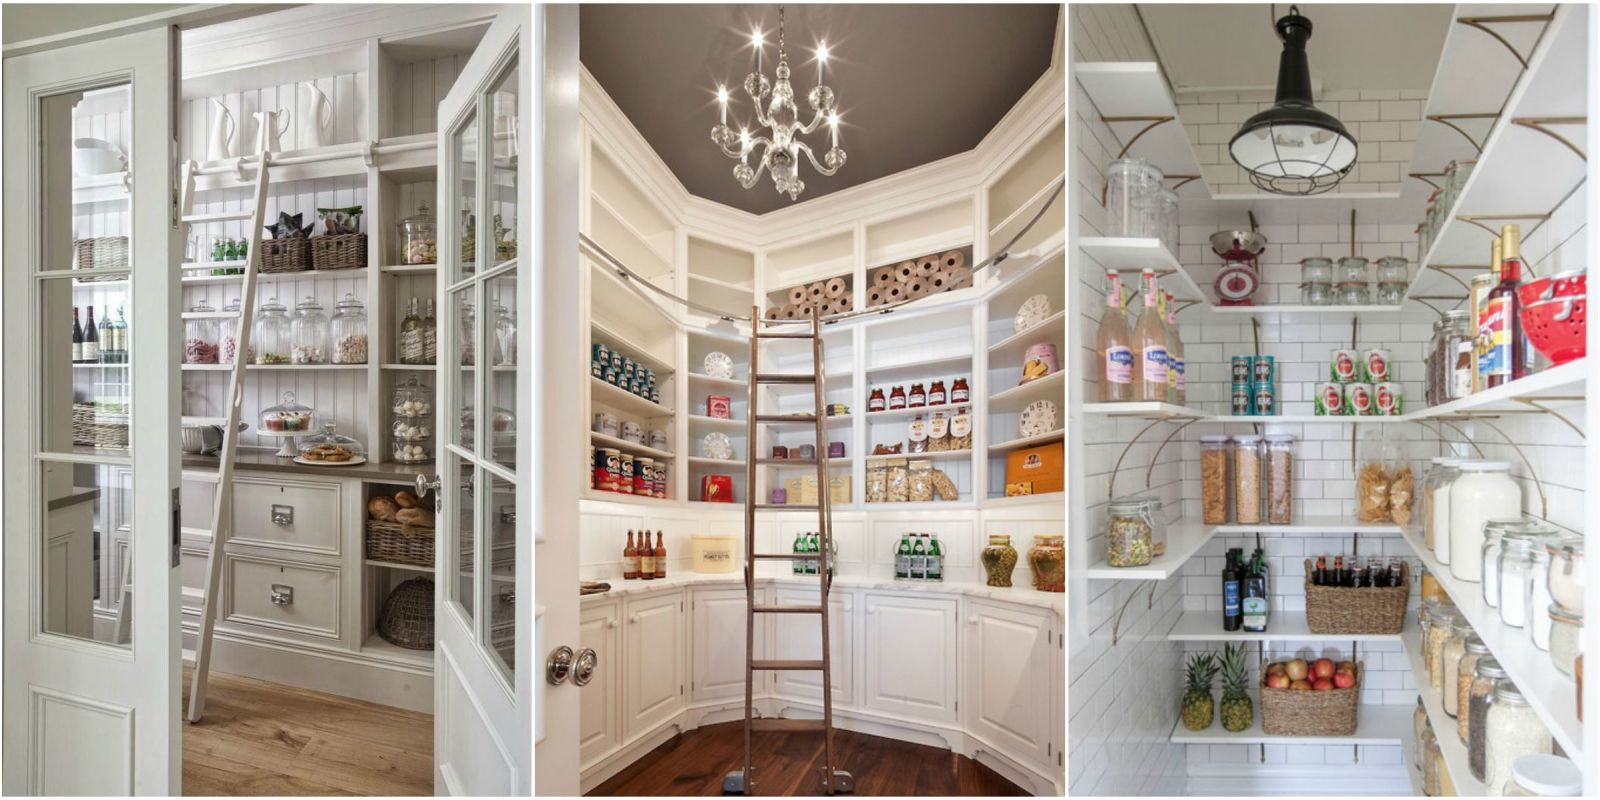 The 70 000 Dream Kitchen Makeover: Make This DIY Pegboard Pantry To Maximize Your Kitchen